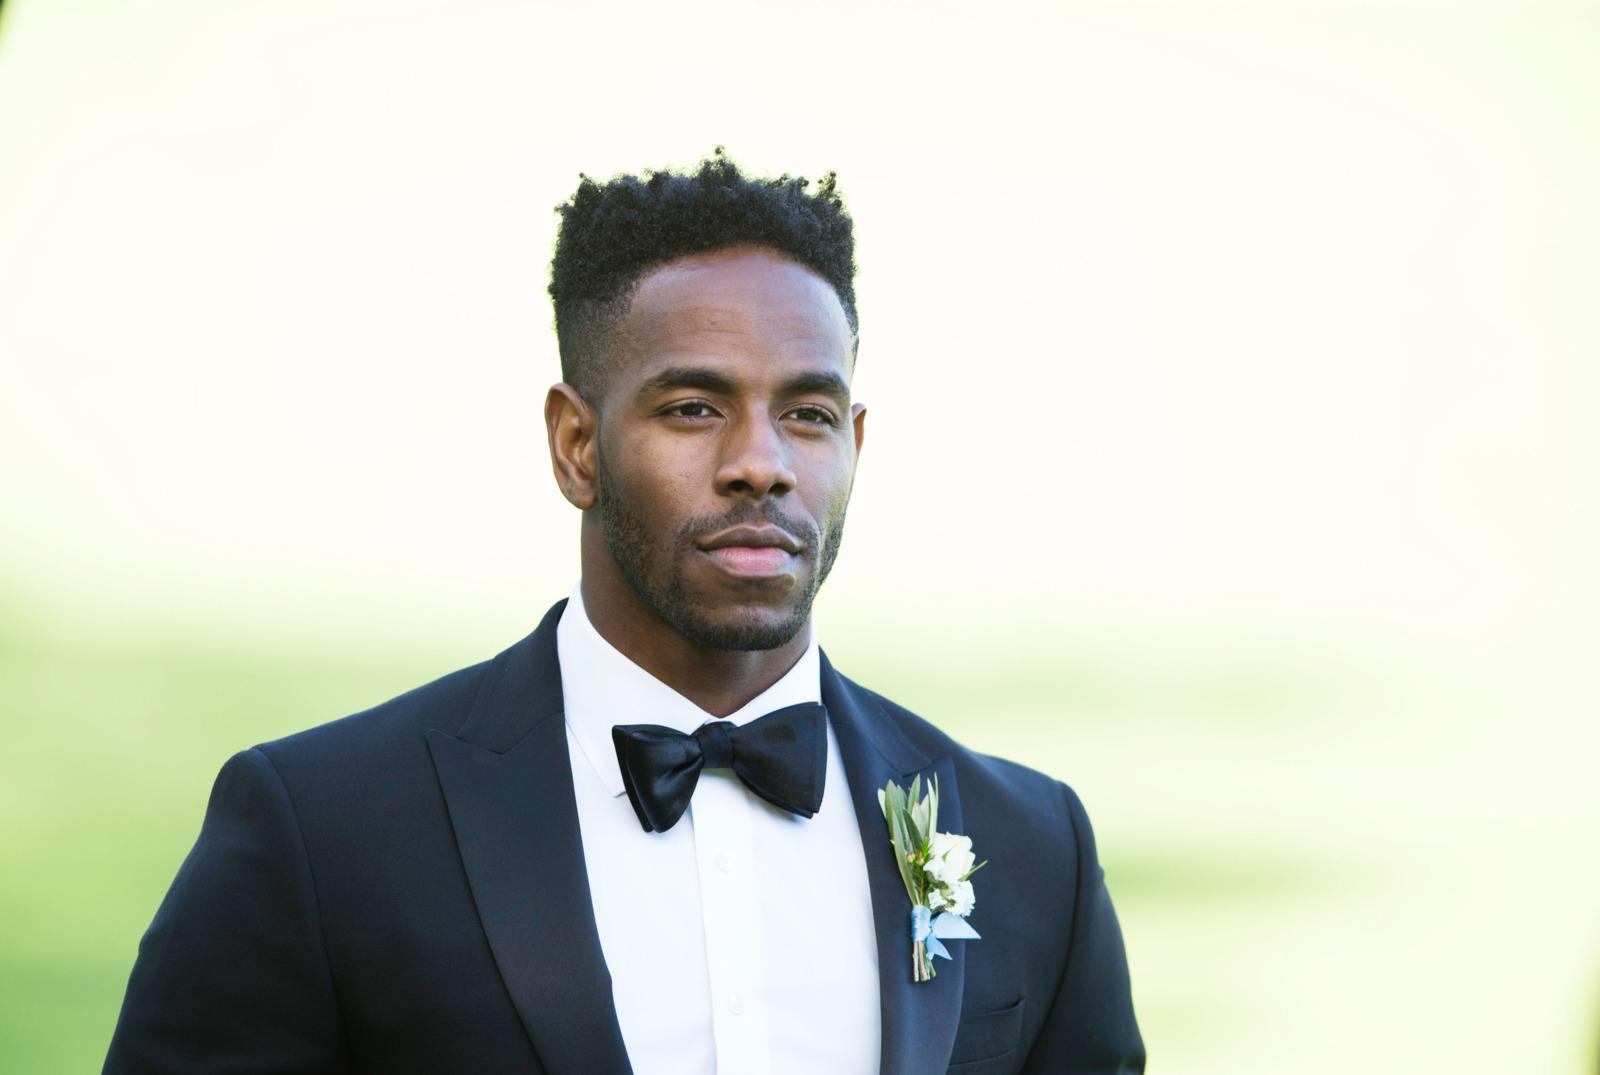 The Bachelorette's Lincoln Adim Was Convicted of Indecent Assault and Battery